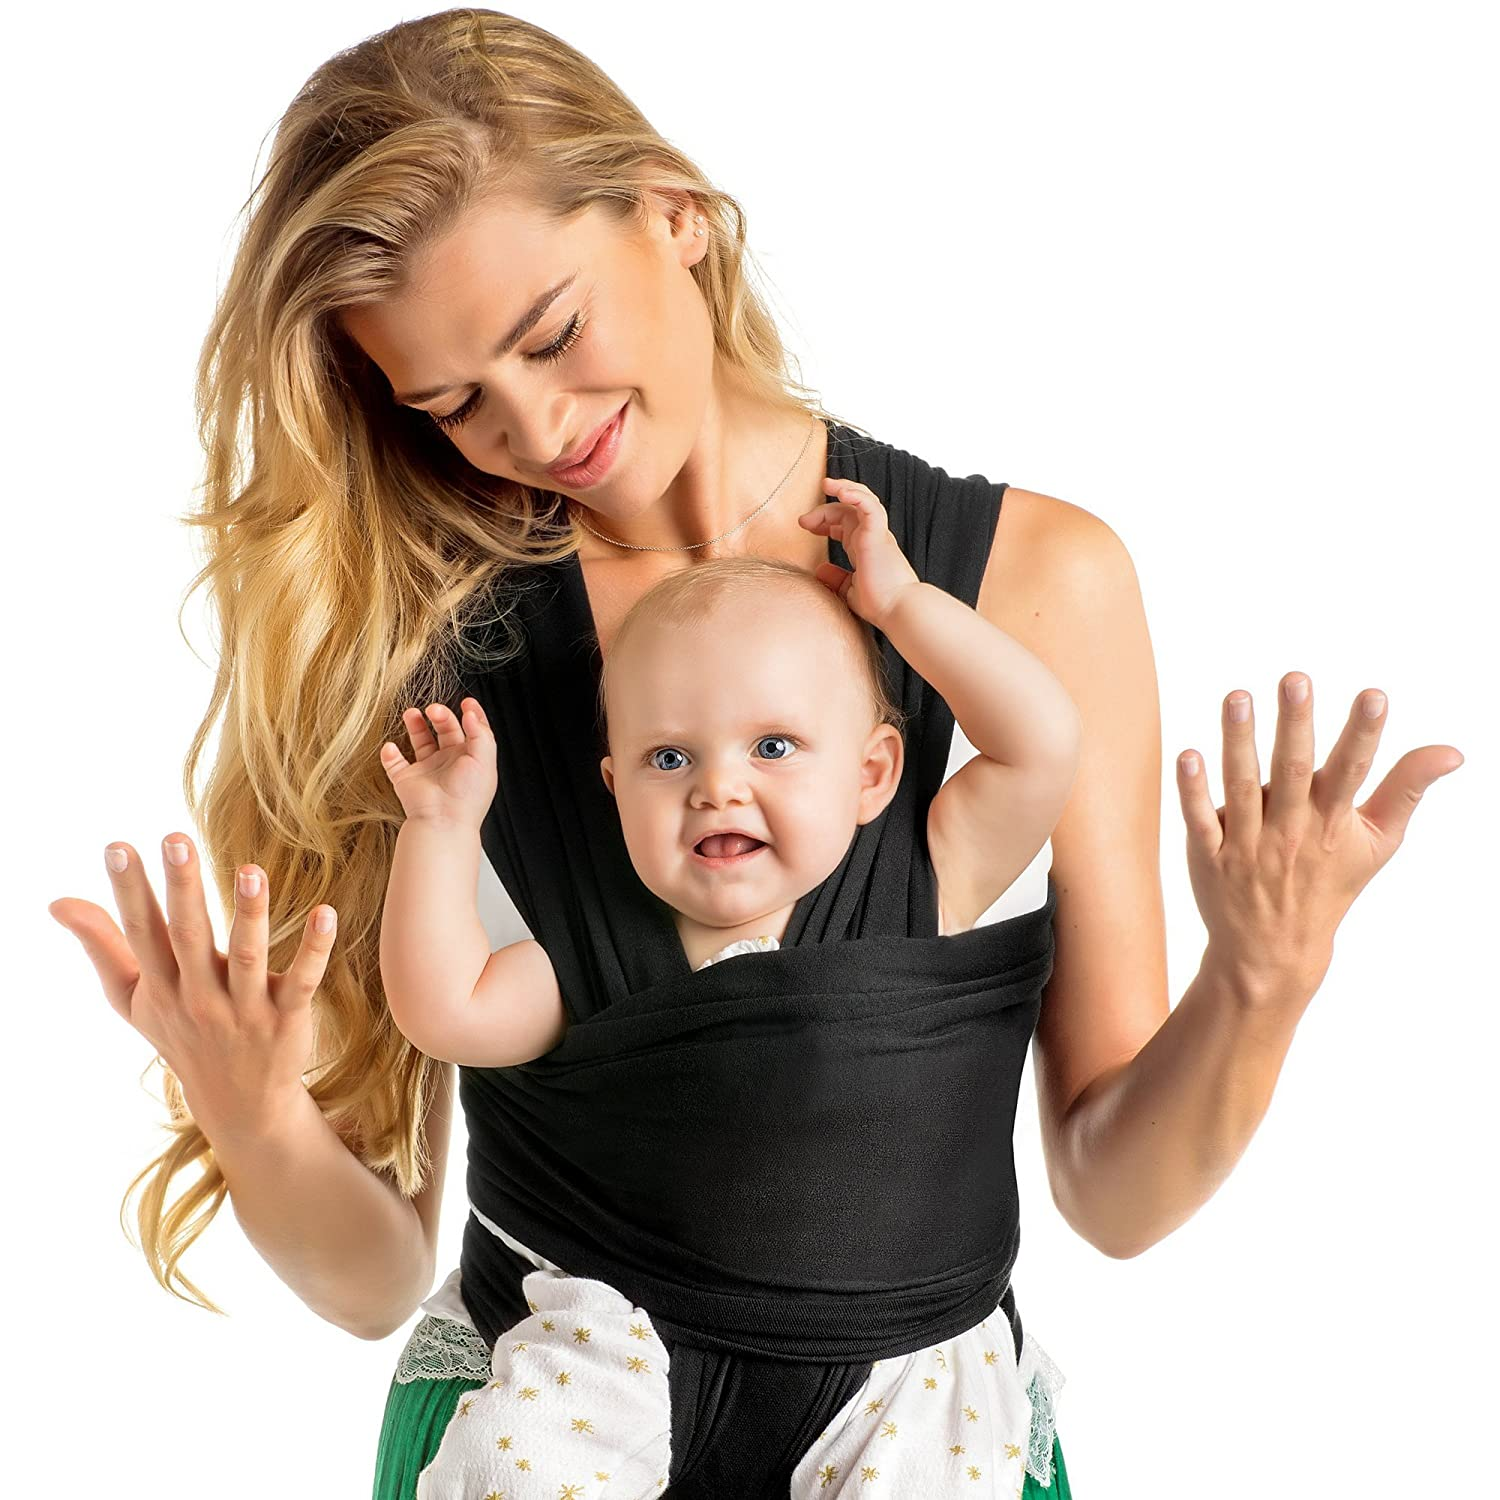 Baby Wrap Carrier Hands Free Breathable Soft And Stretchy Baby Sling Carrier Ergonomic Safe Secure